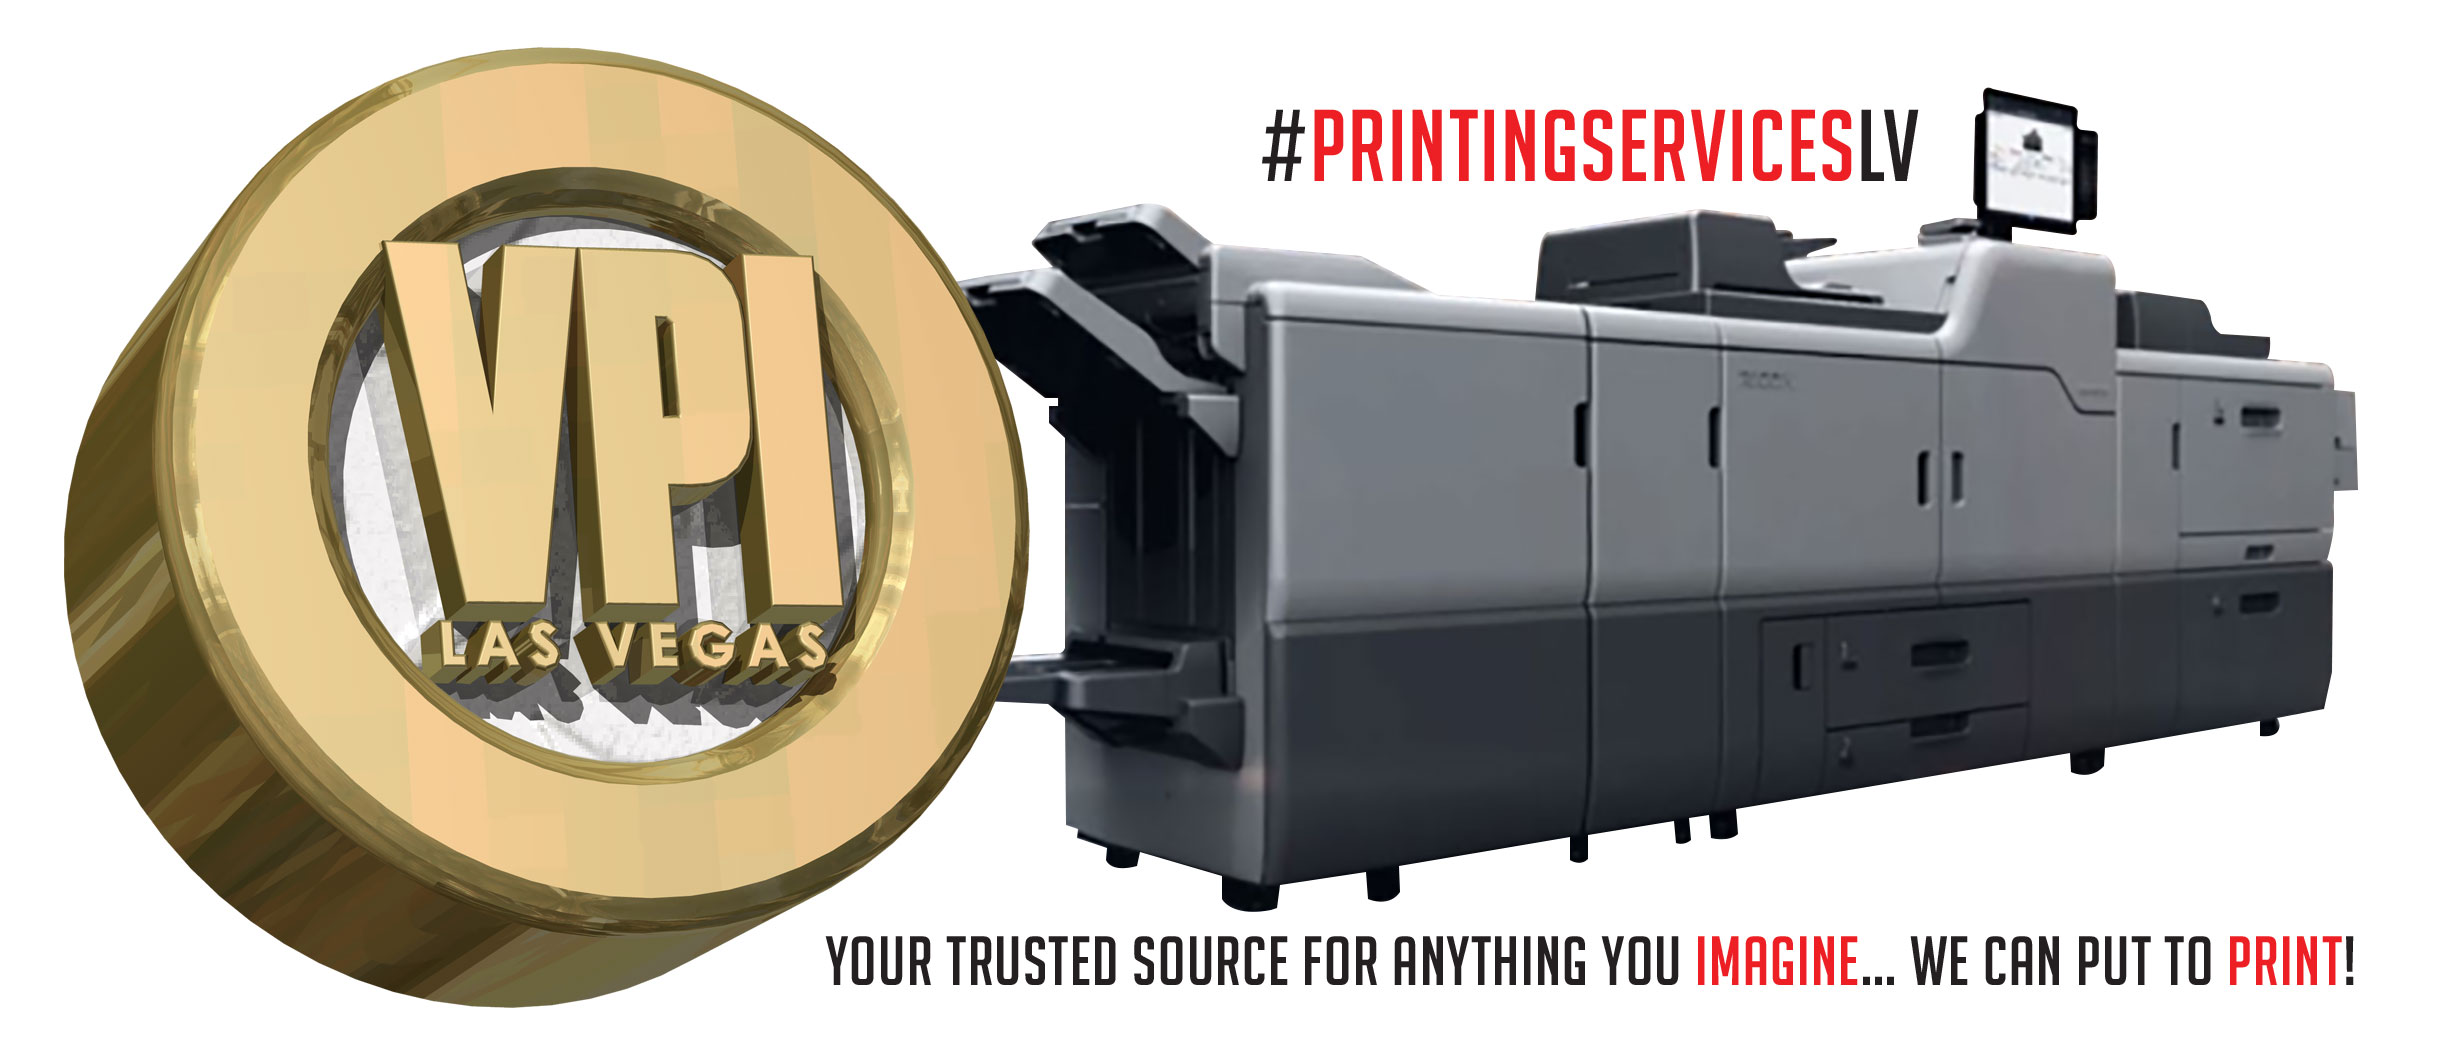 VPILV | Valley Press Incorporated Las Vegas (702) 871-0660 #PRINTINGSERVICESLV